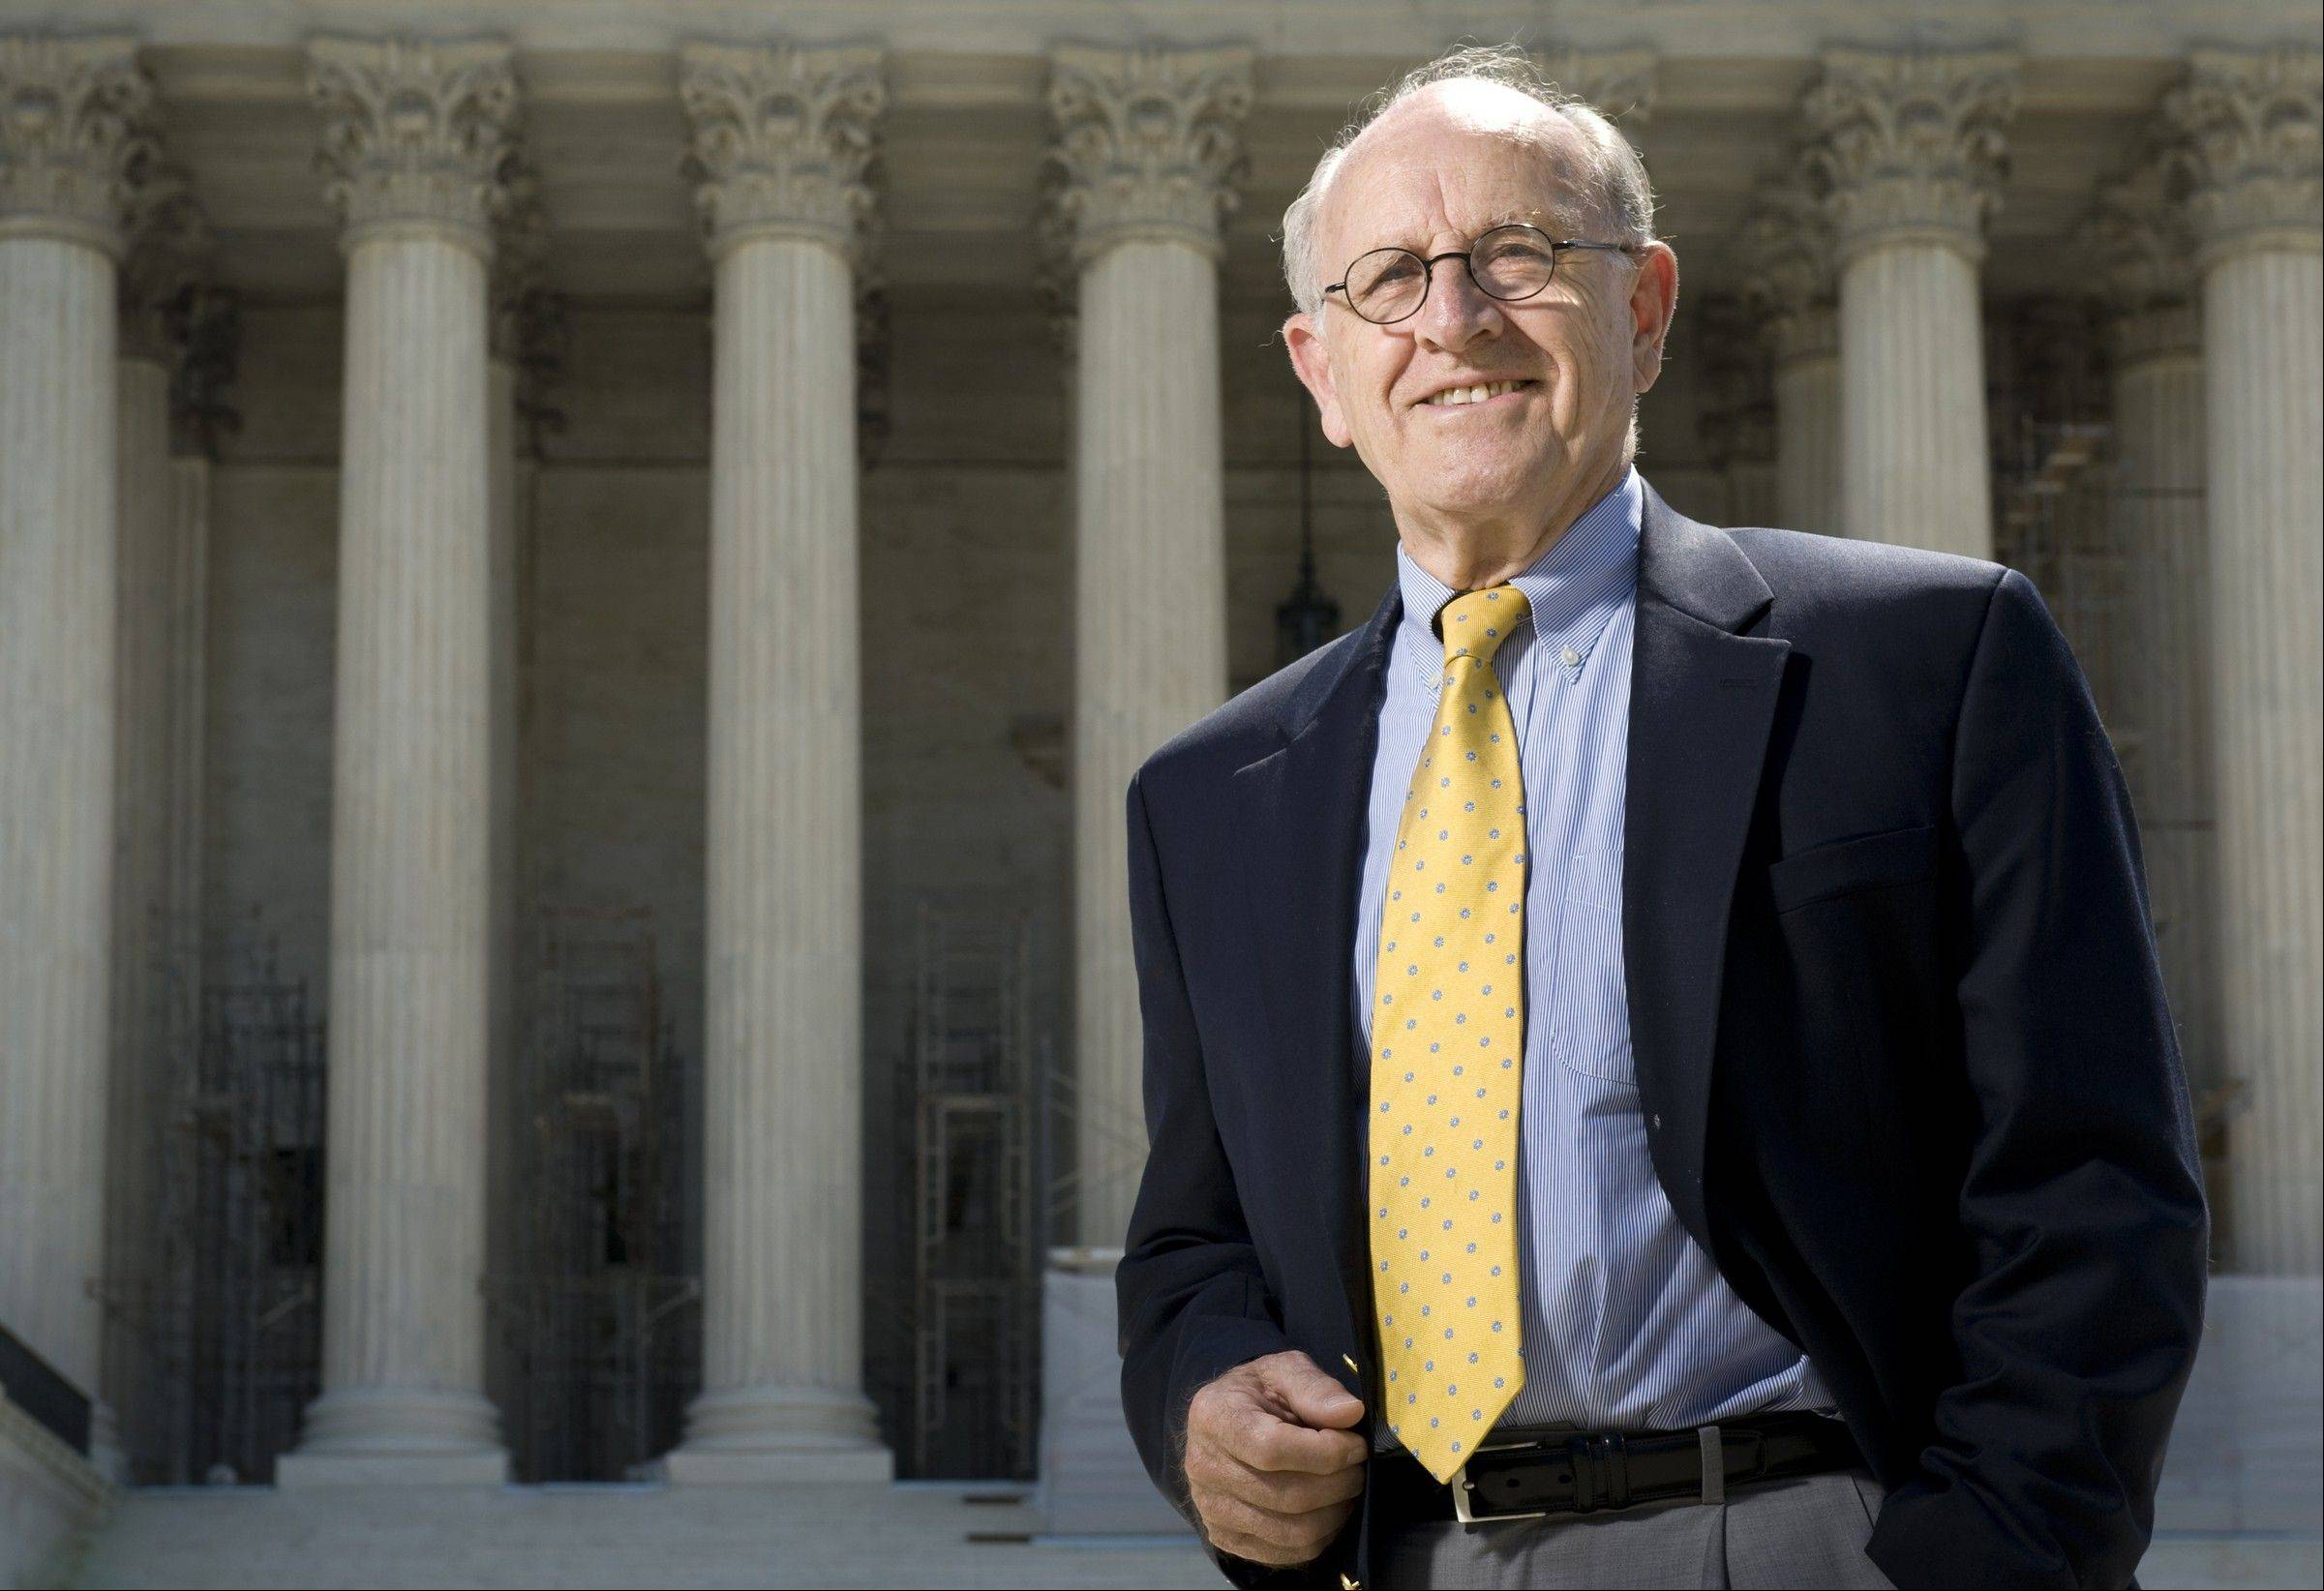 Lyle Denniston, 81, has gained attention live blogging for the SCOTUSBlog website that reports the release of Supreme Court opinions. On Thursday, Denniston expects to be the first to tell a quarter-million Americans, including the most devoted court-watchers, whether the health-care law still stands.